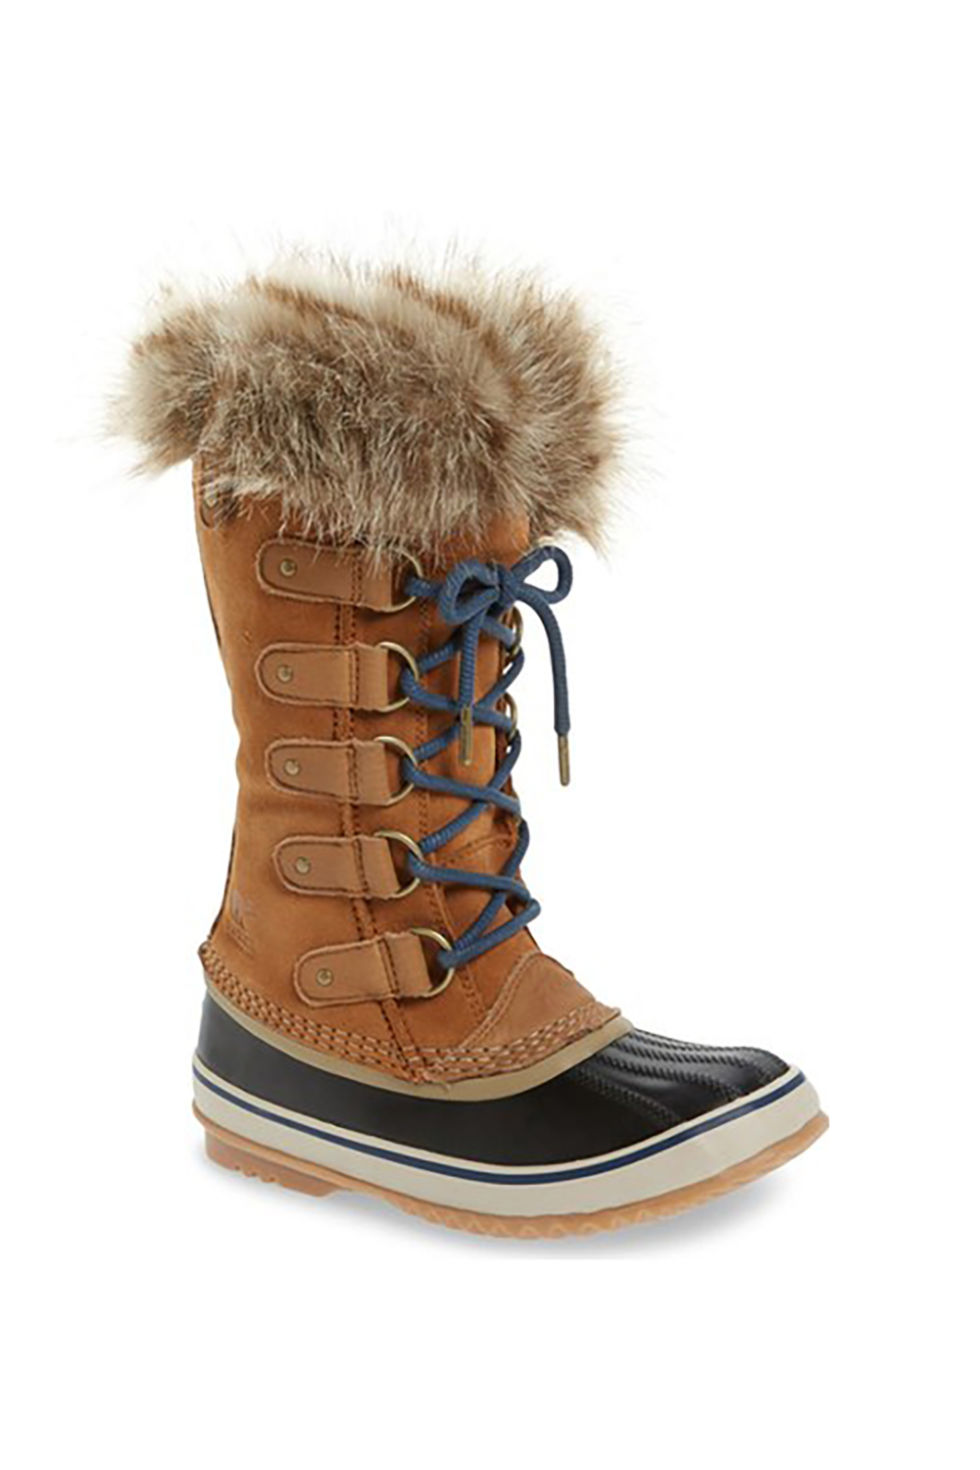 12 Best Snow Boots For Women - Fashionable Winter Boots You'll ...